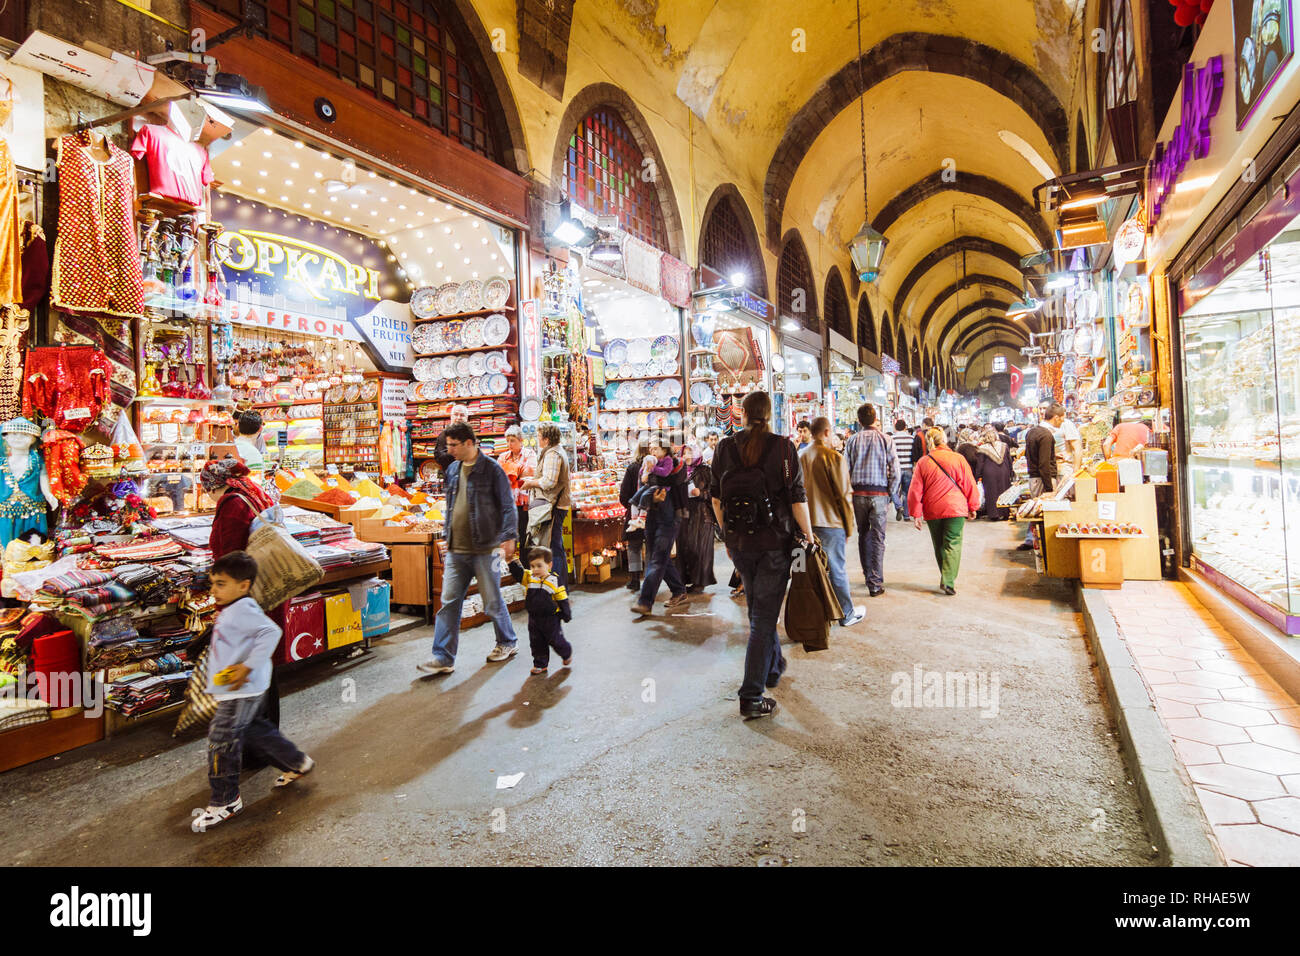 Istanbul, Turkey : People stroll through the Spice Bazaar also known as the Egyptian Bazaar in the Eminönü quarter of the Fatih district. Built in 166 - Stock Image